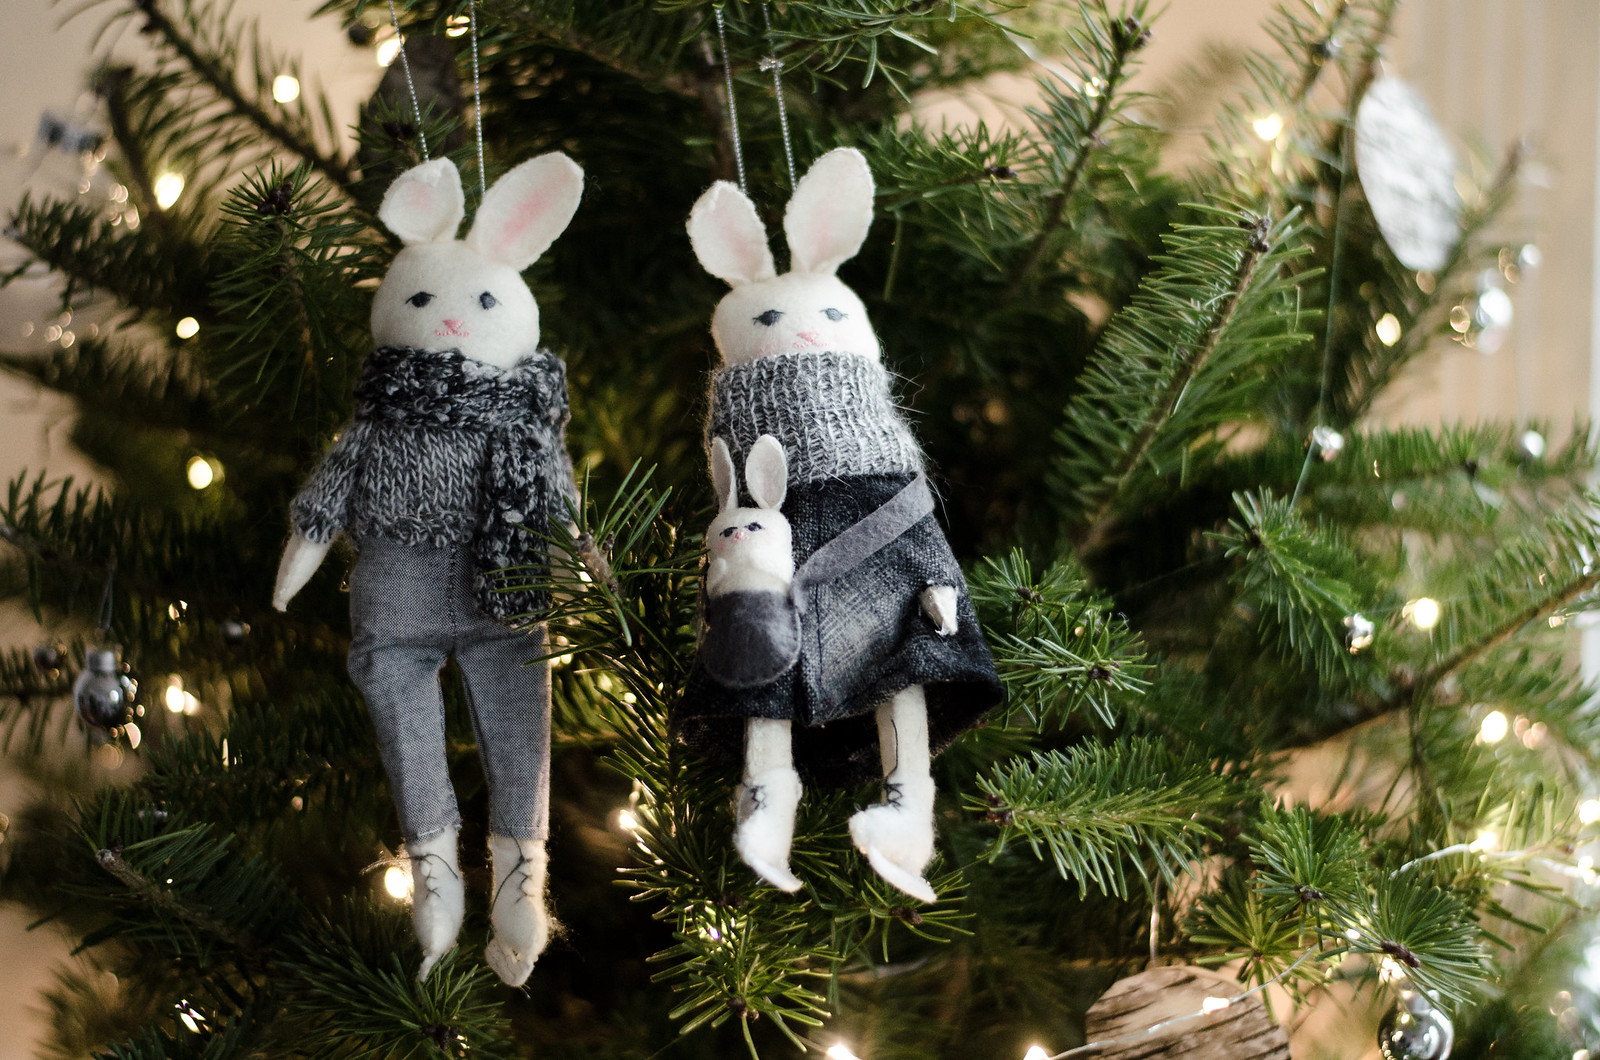 Bunny Family by Erika Barratt for West Elm on juliettelaura.blogspot.com